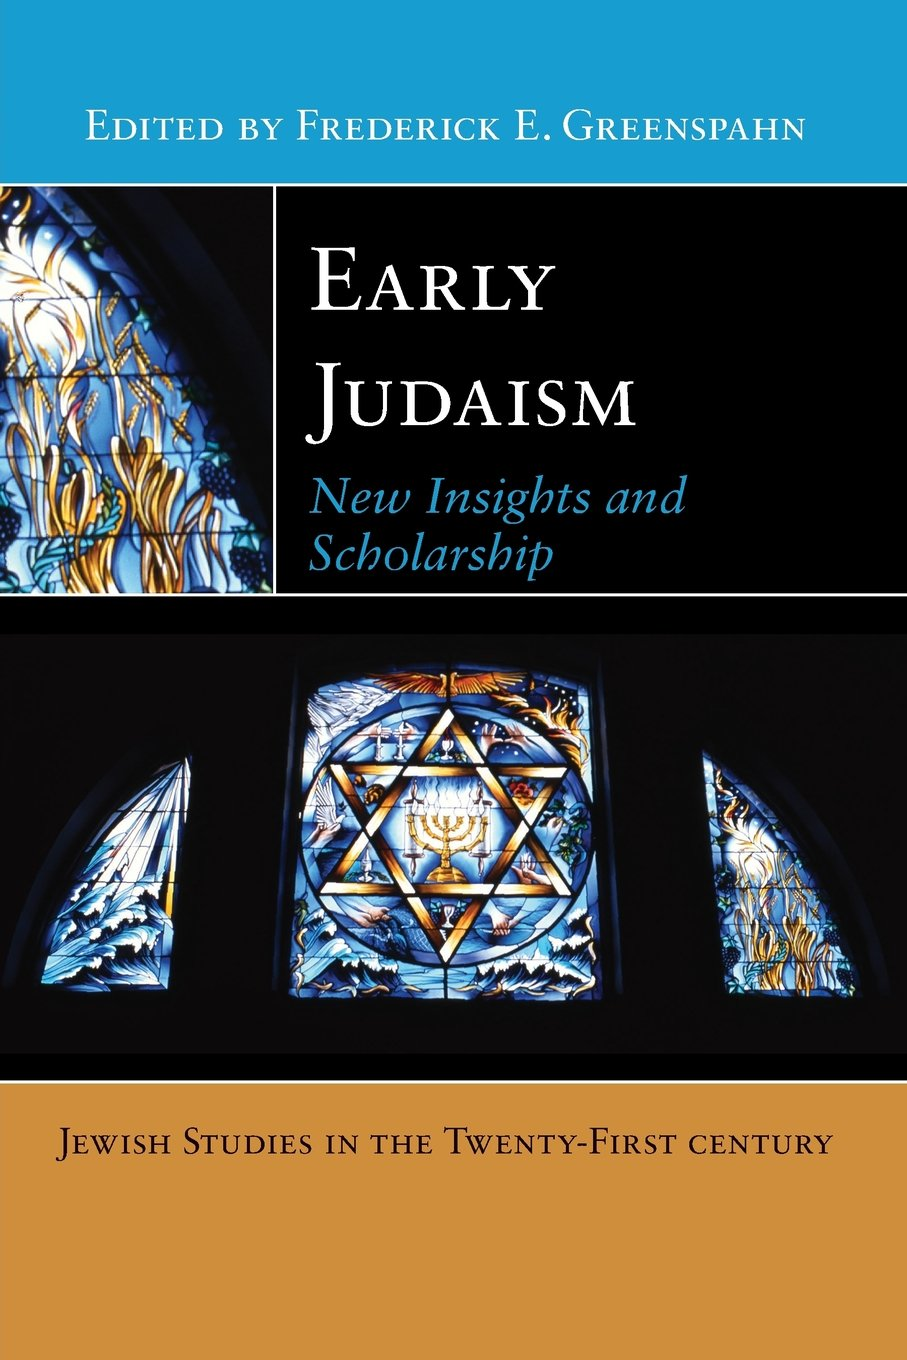 Download Early Judaism: New Insights and Scholarship (Jewish Studies in the Twenty-First Century) ebook